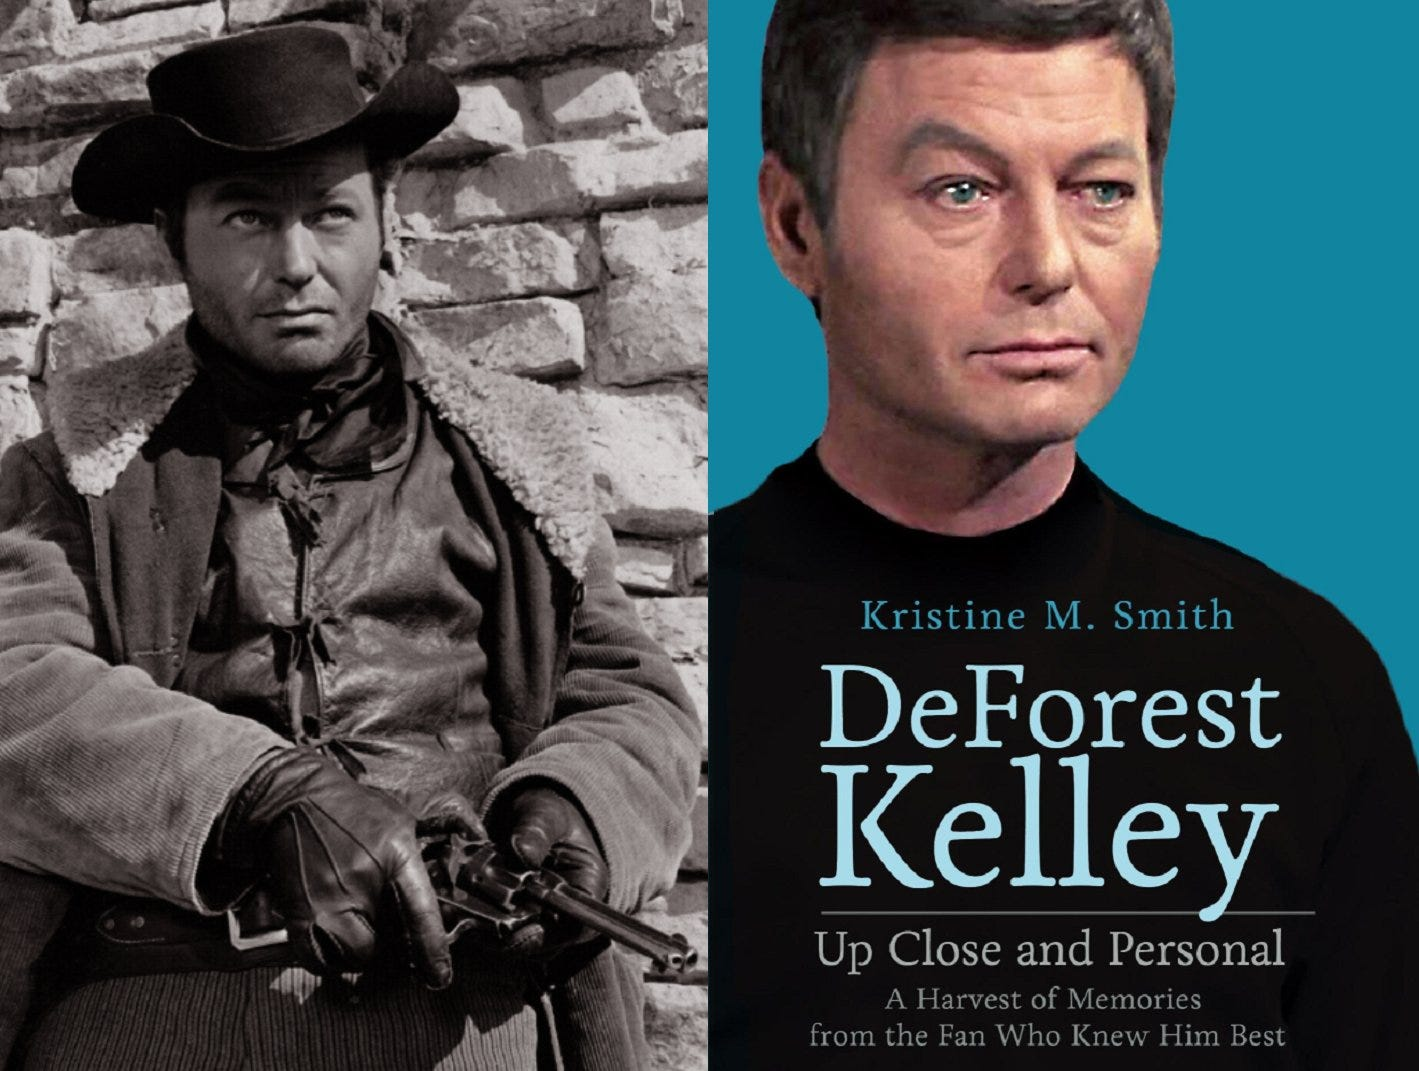 deforest kelley tombstone